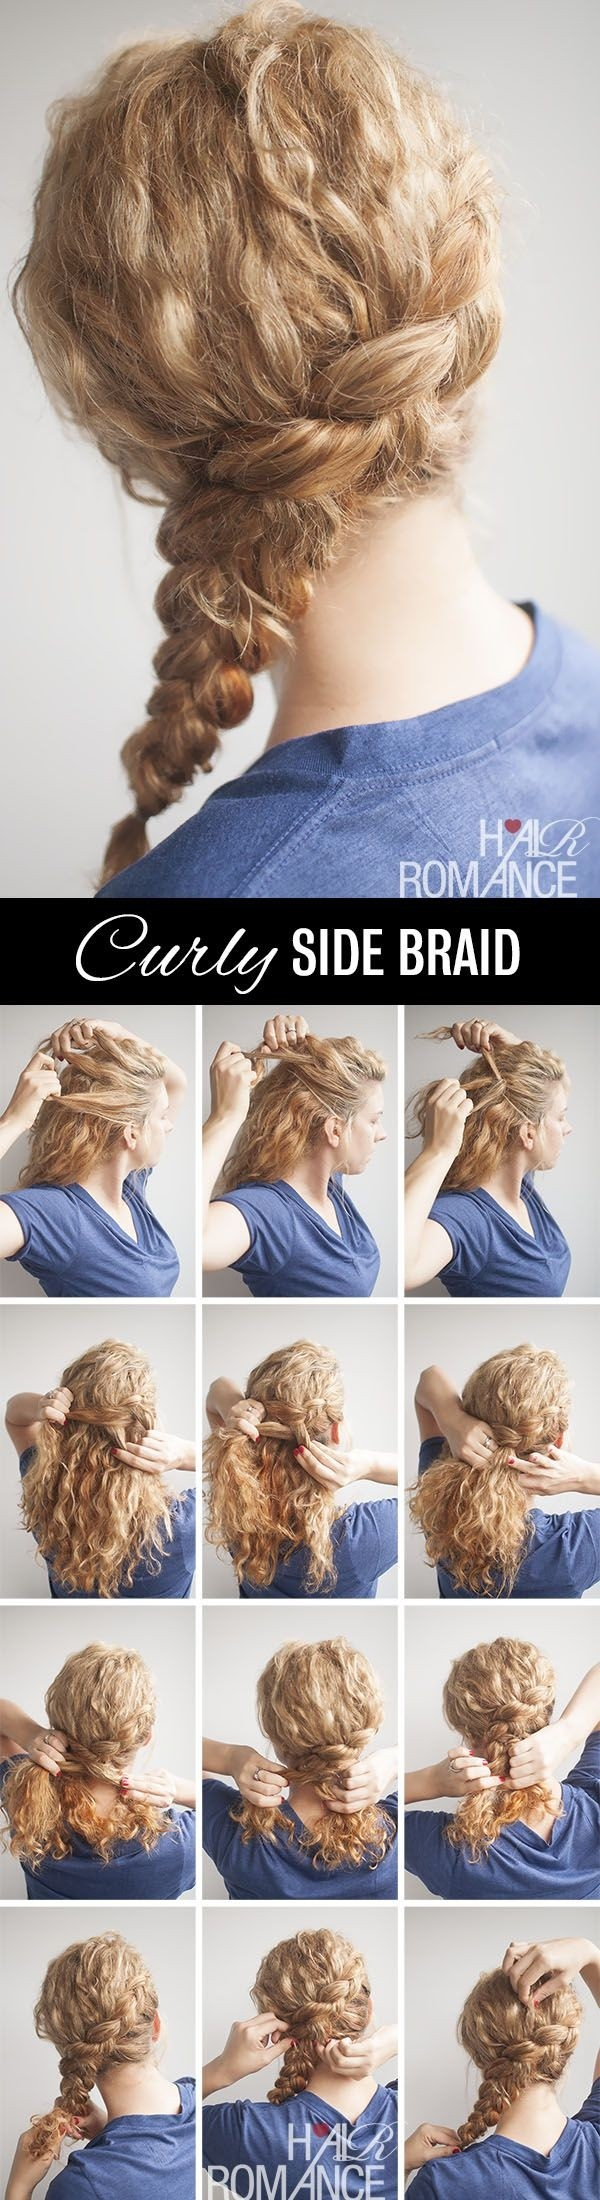 9 Best Indian Hairstyles for Curly Hair | Styles At Life